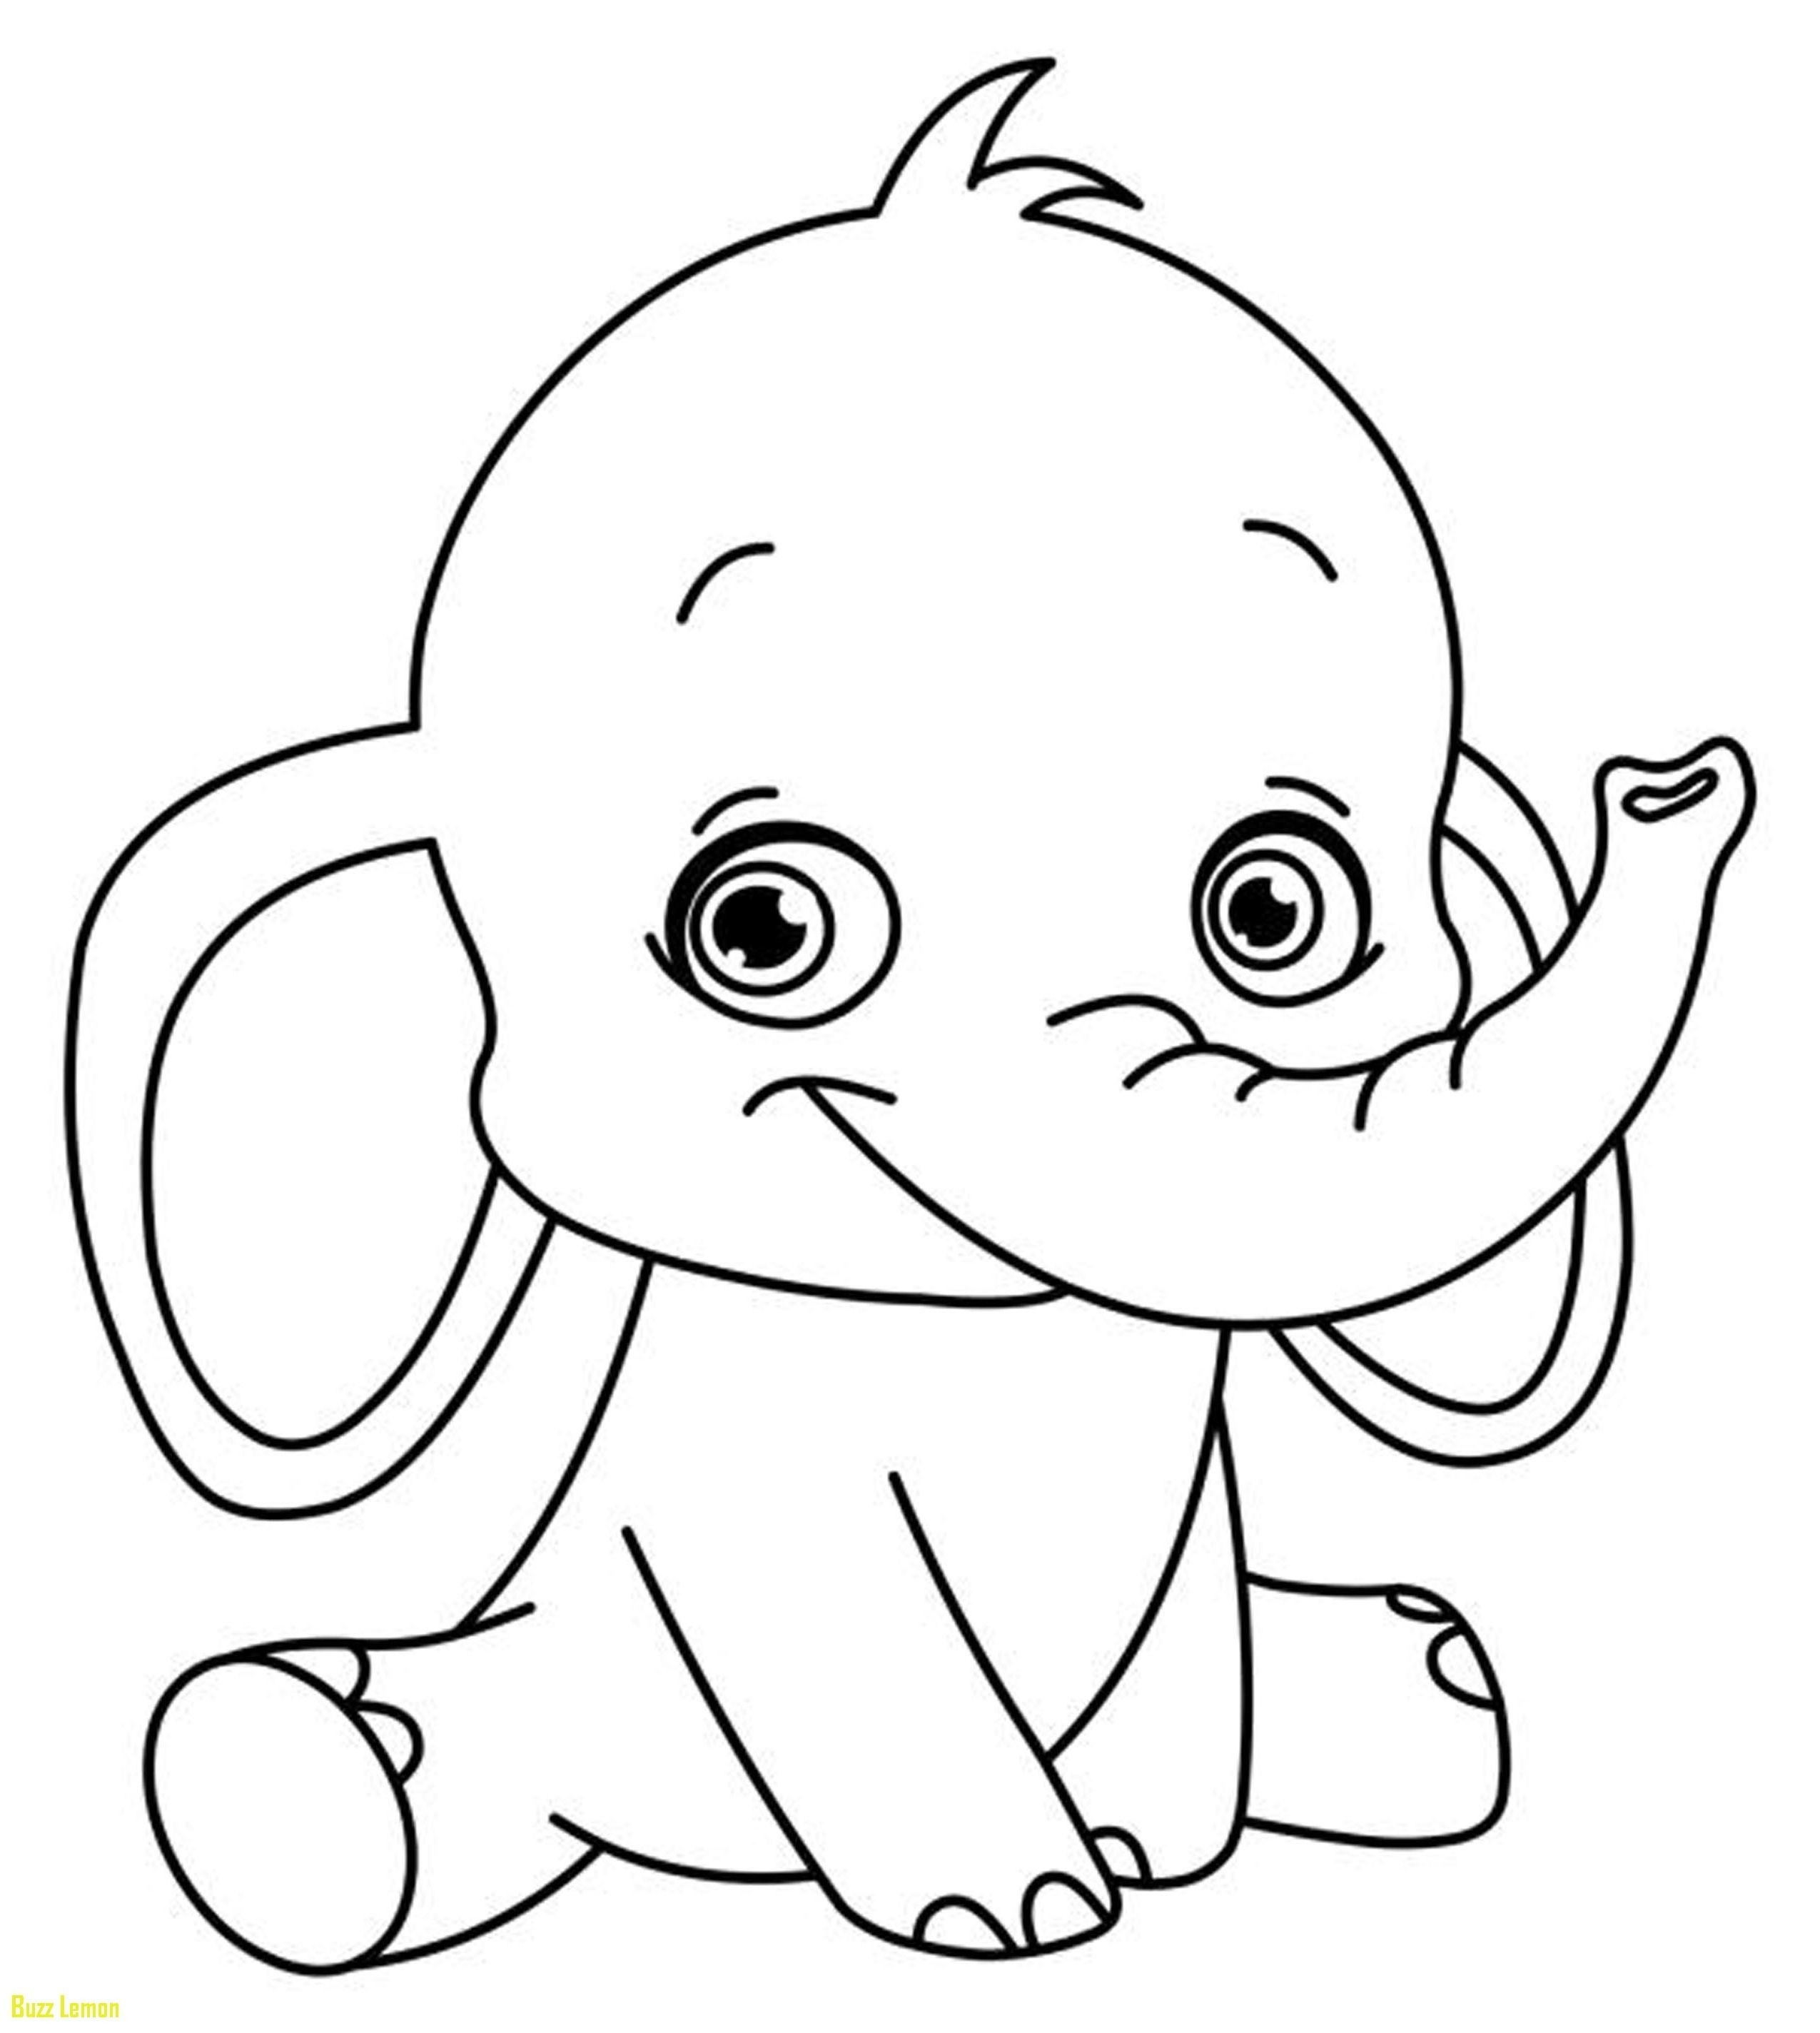 Coloring Ideas : Free Printablering Pages For Kids Best Of Adult - Free Printable Coloring Pages For Kids